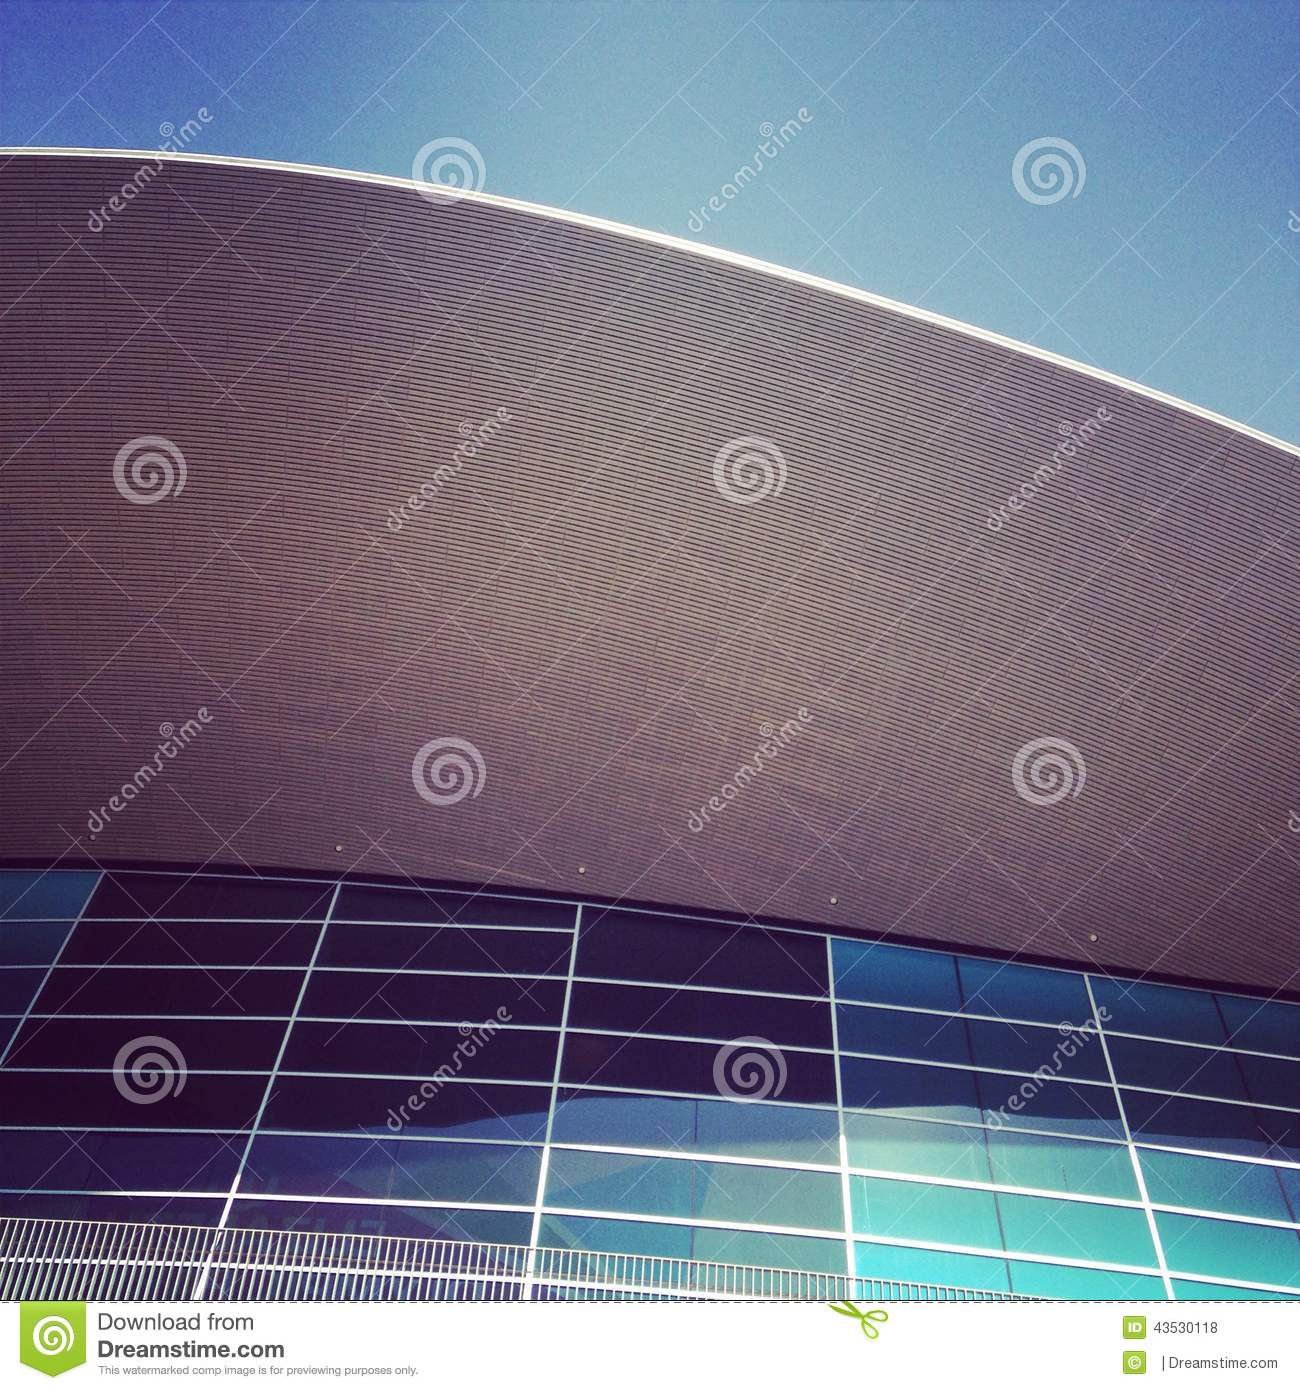 Olympic Swimming Pool In Person: Olympic Swimming Pool Stock Photo